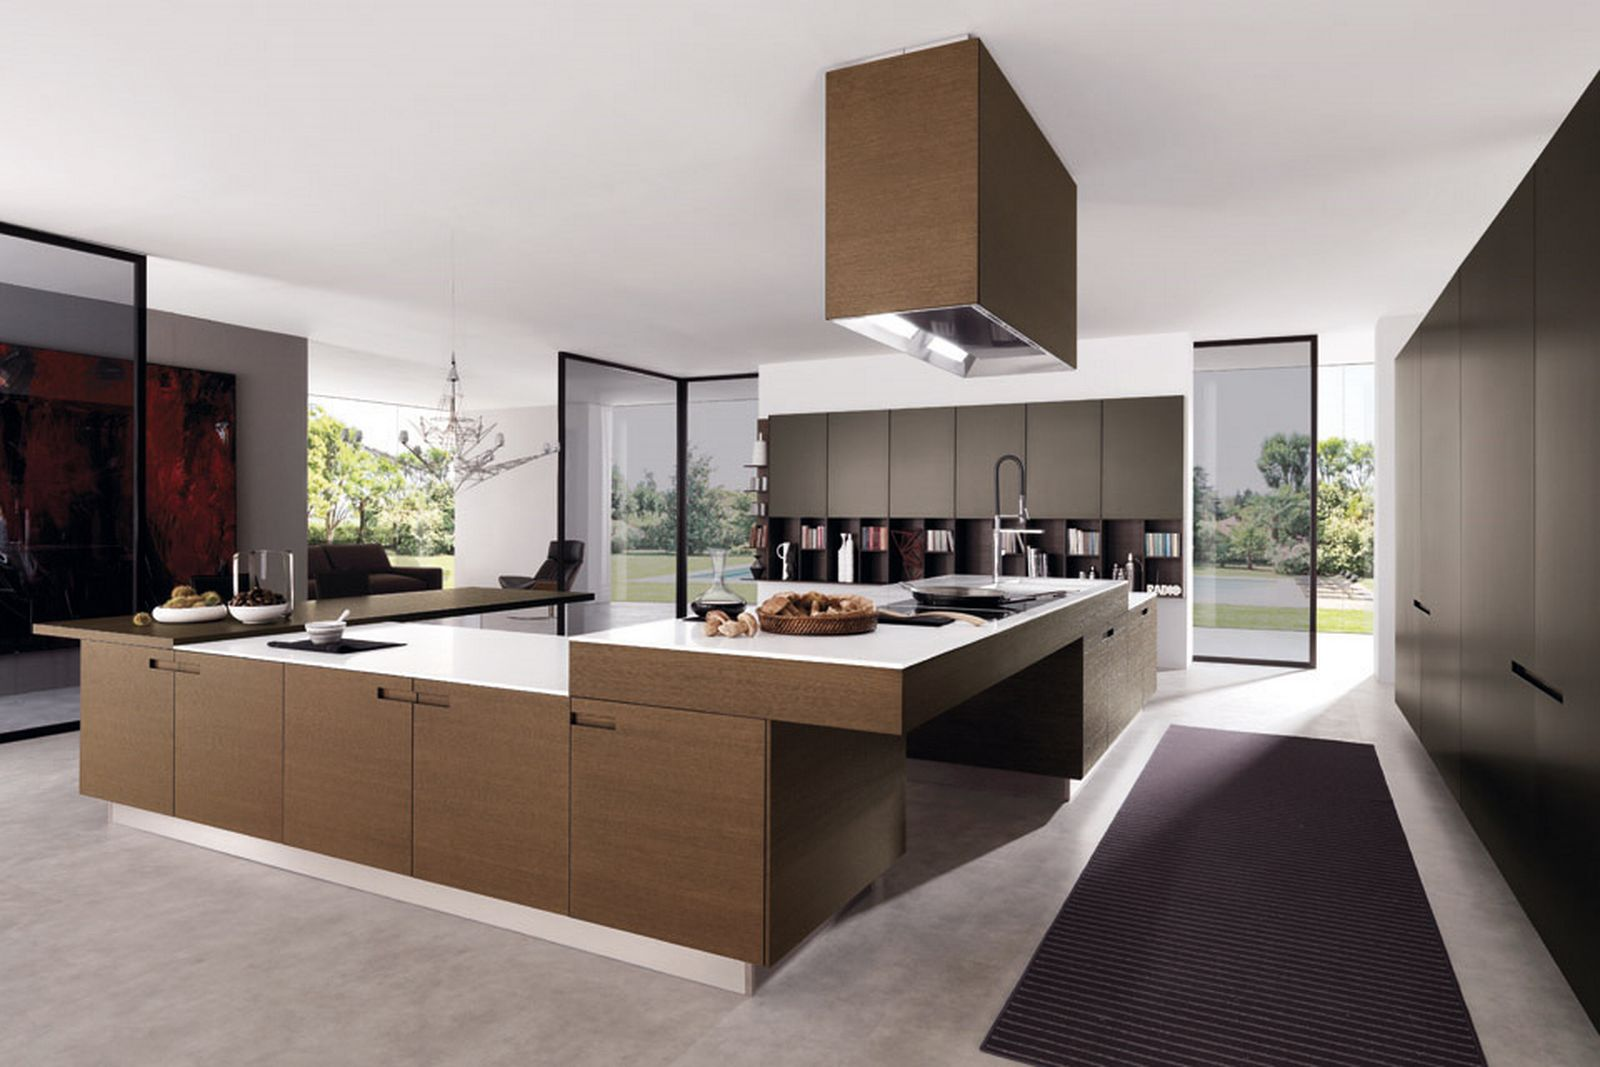 modern-kitchen-cabinets-pictures-as-kitchen-cabinets-design-with-decorative-design-ideas-for-decorative-Kitchen-inspiration-59